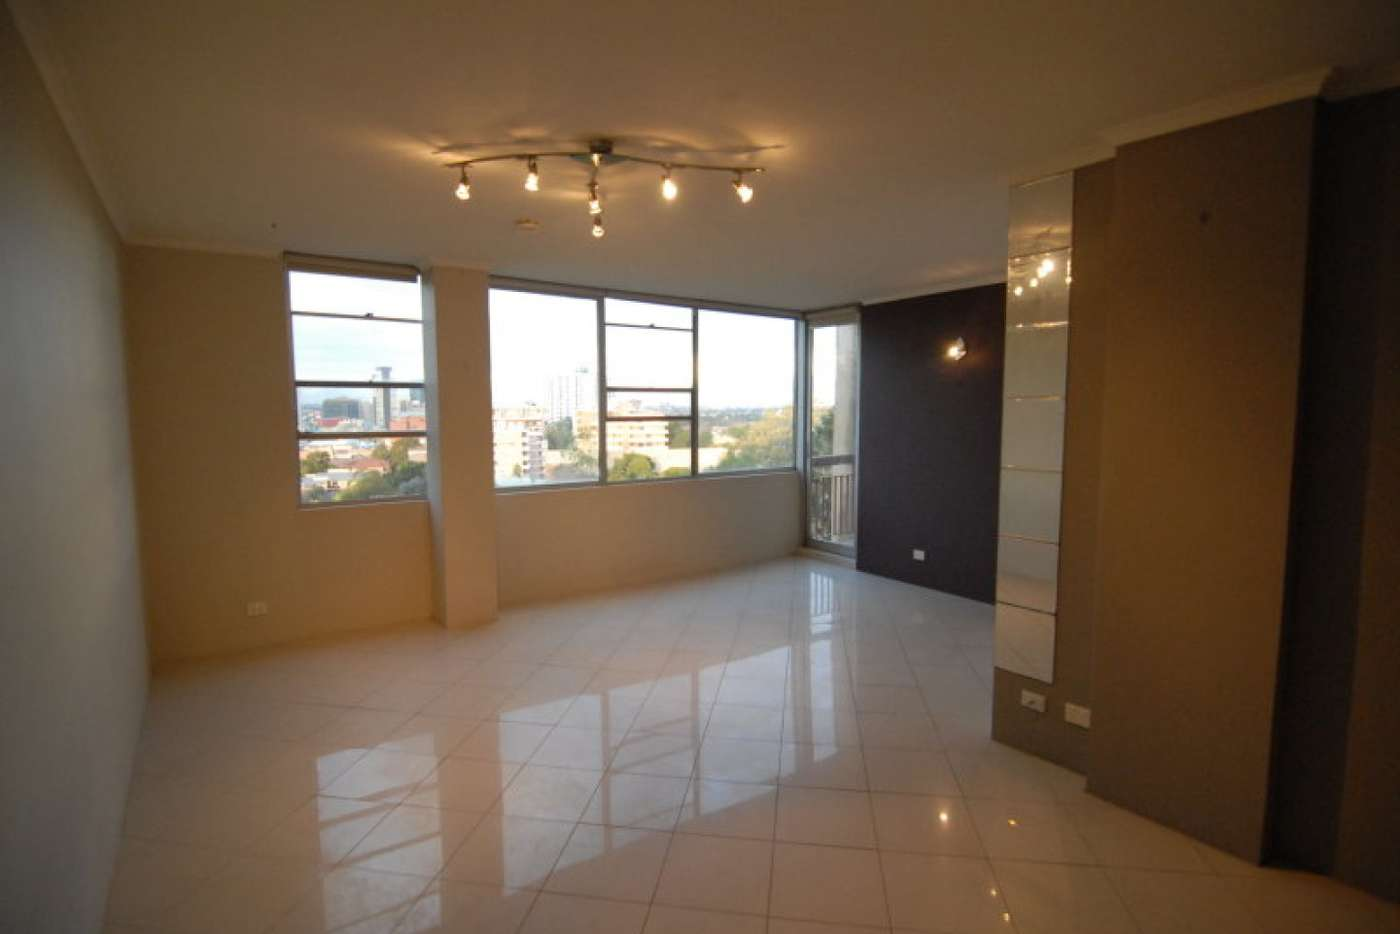 Main view of Homely unit listing, 39/5 Good Street, Parramatta NSW 2150